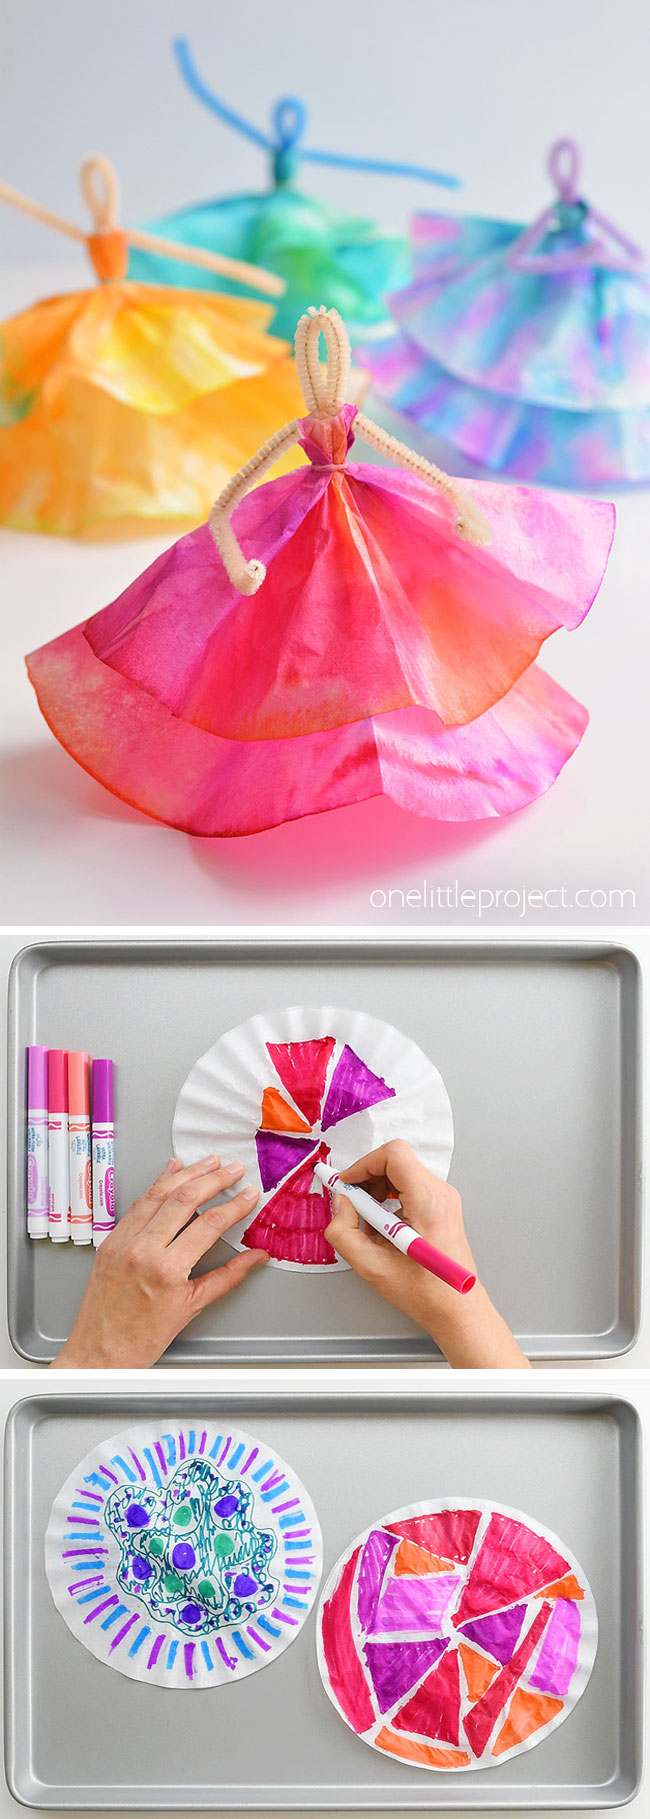 These coffee filter dancers are SO PRETTY! And all you need are markers, coffee filters and pipe cleaners. This is such a great coffee filter craft and a super fun craft for kids - I love crafts that the kids can play with when they're done. Kids love colouring the coffee filters and then watching the science magic that happens when the colours bleed together. I can't believe you can make something so beautiful from coffee filters!